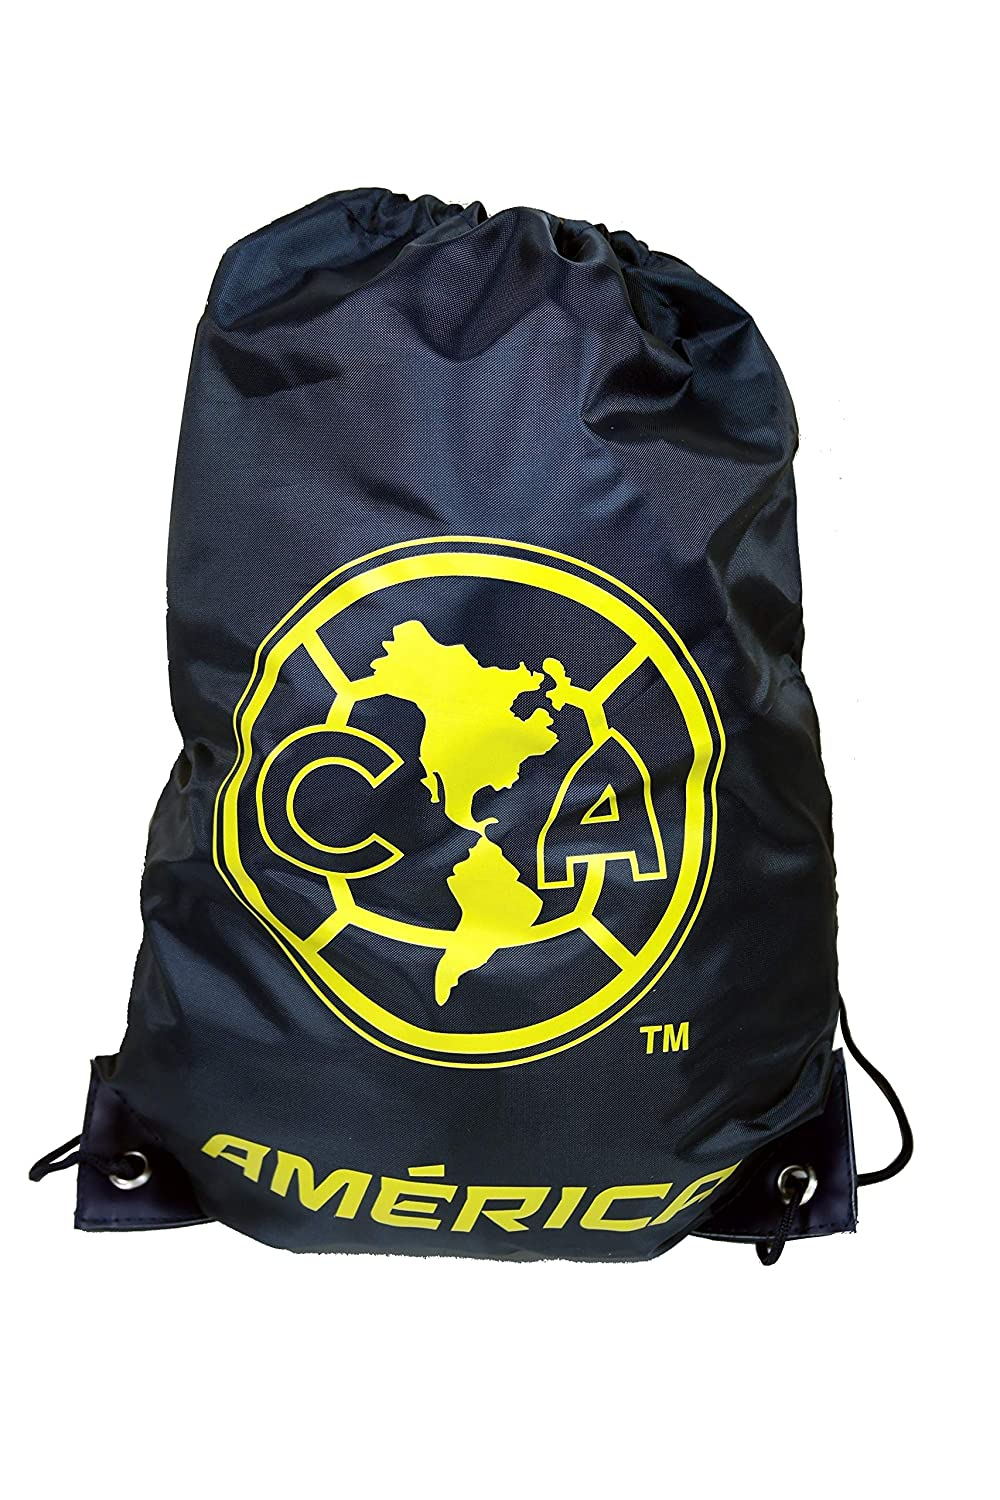 CA Club America Authentic Official Licensed Soccer Drawstring Cinch Bag 01 by RHINOXGROUP